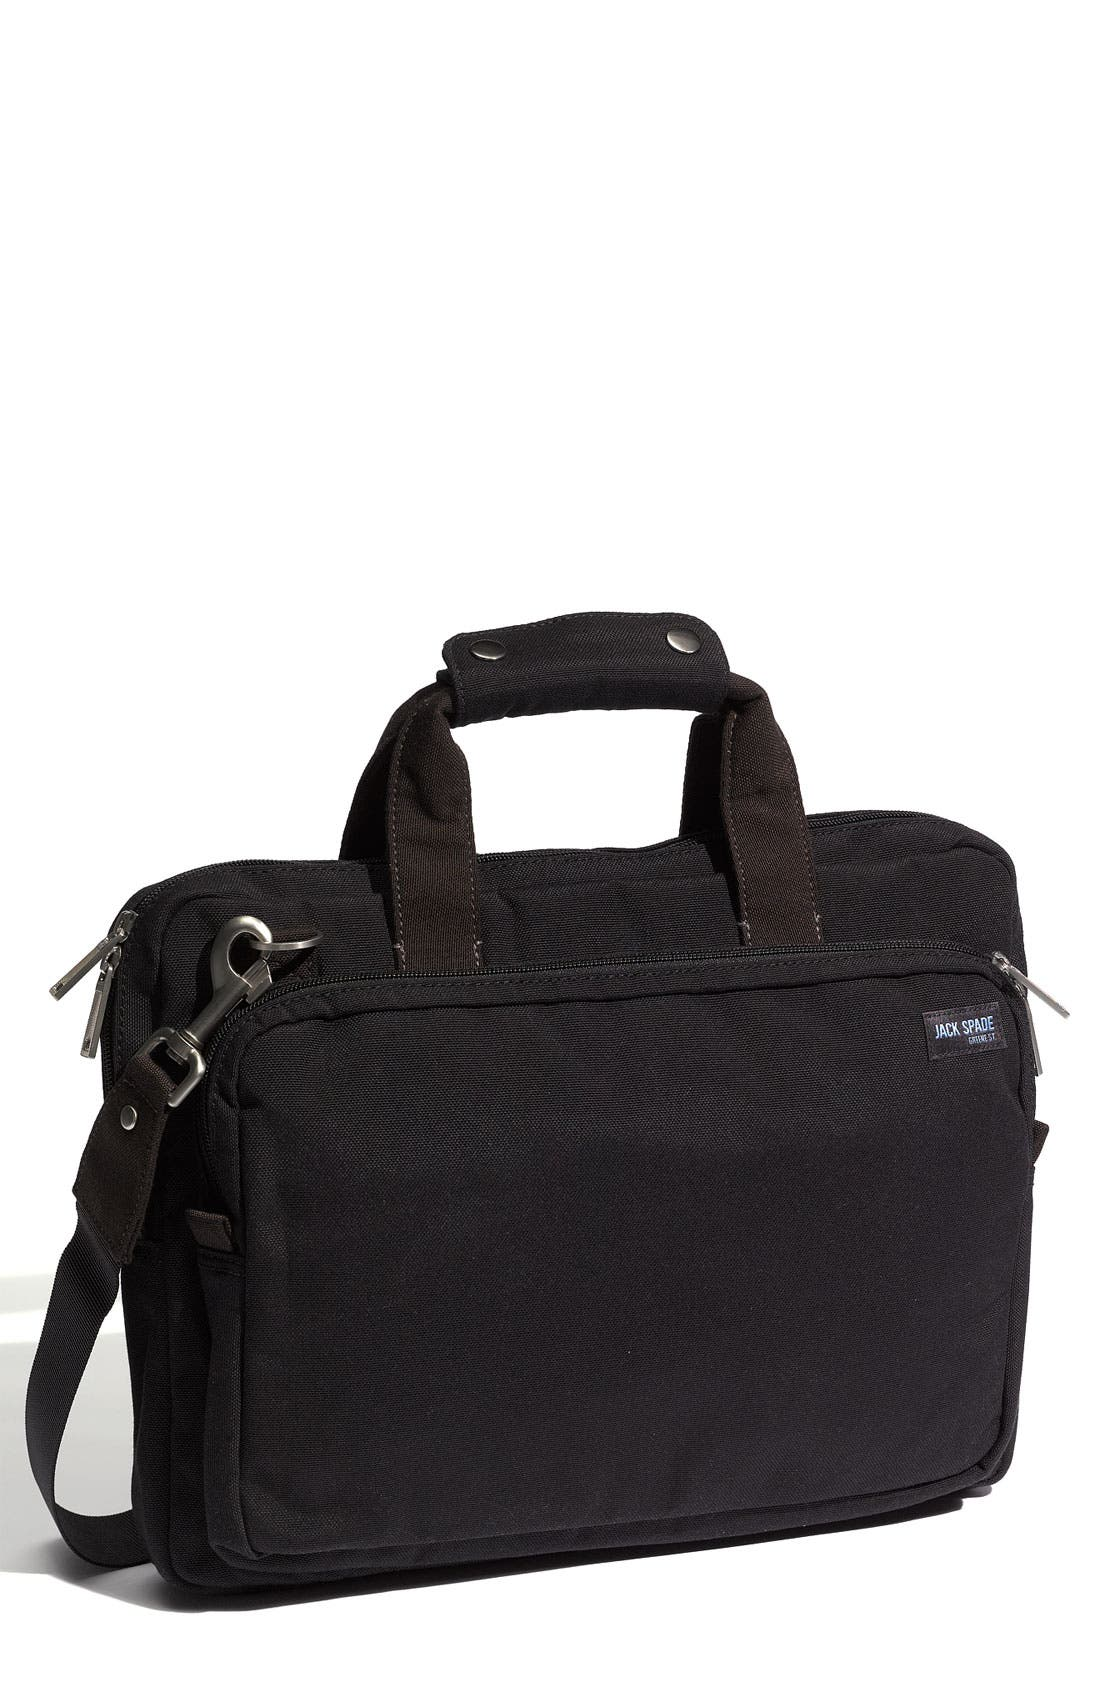 Alternate Image 1 Selected - Jack Spade 'City' Nylon Canvas Briefcase